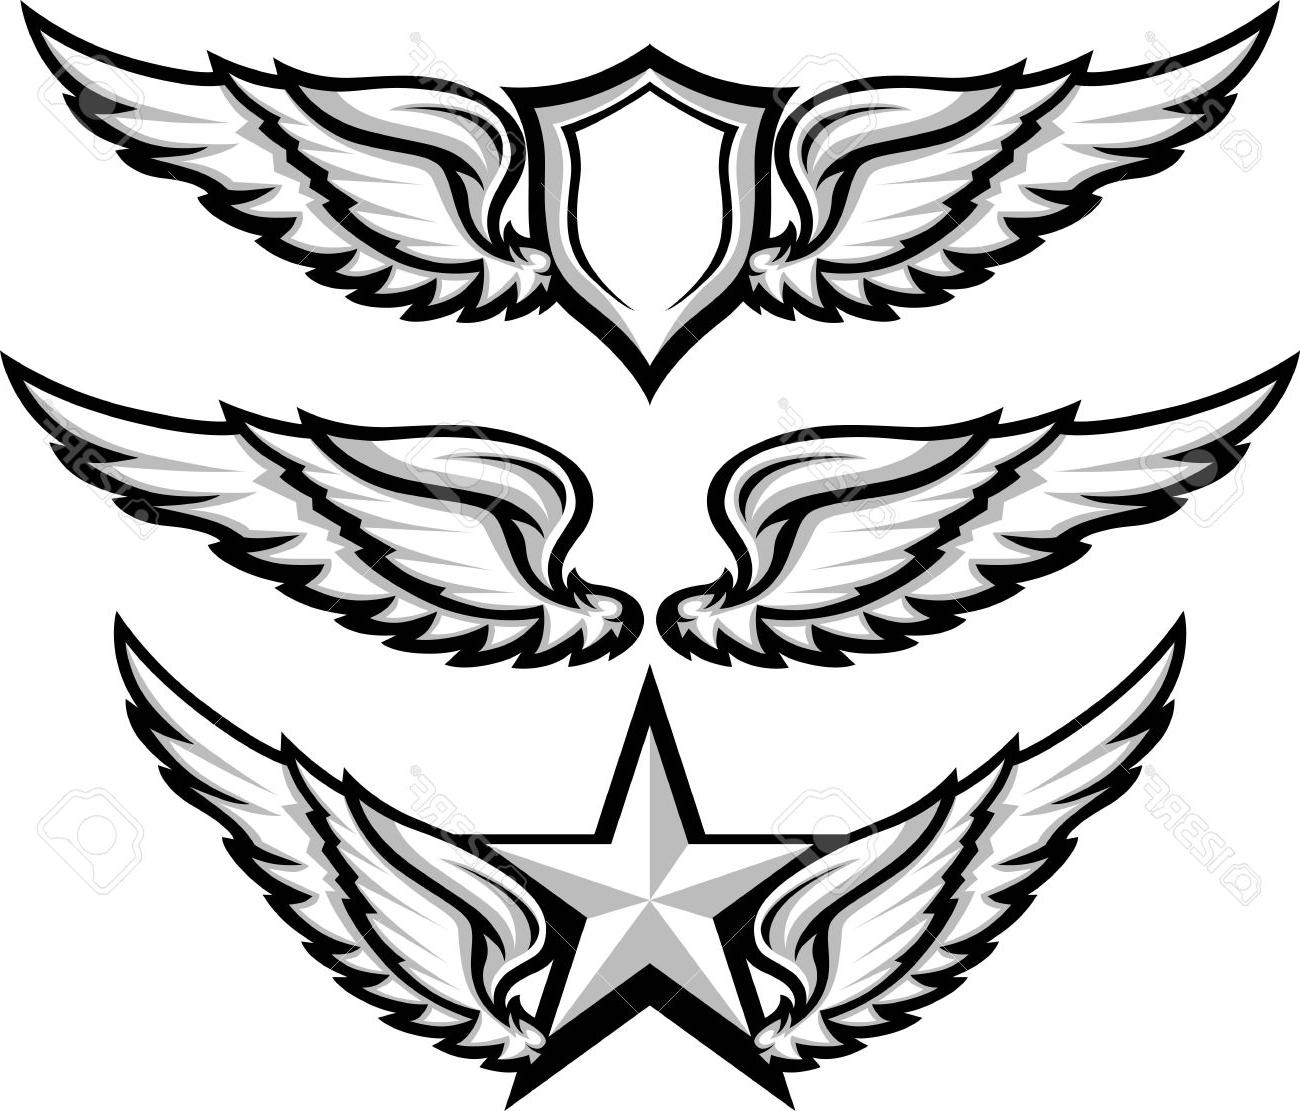 1300x1111 Best Free Shield And Wings Emblems Illustration Stock Vector Wing